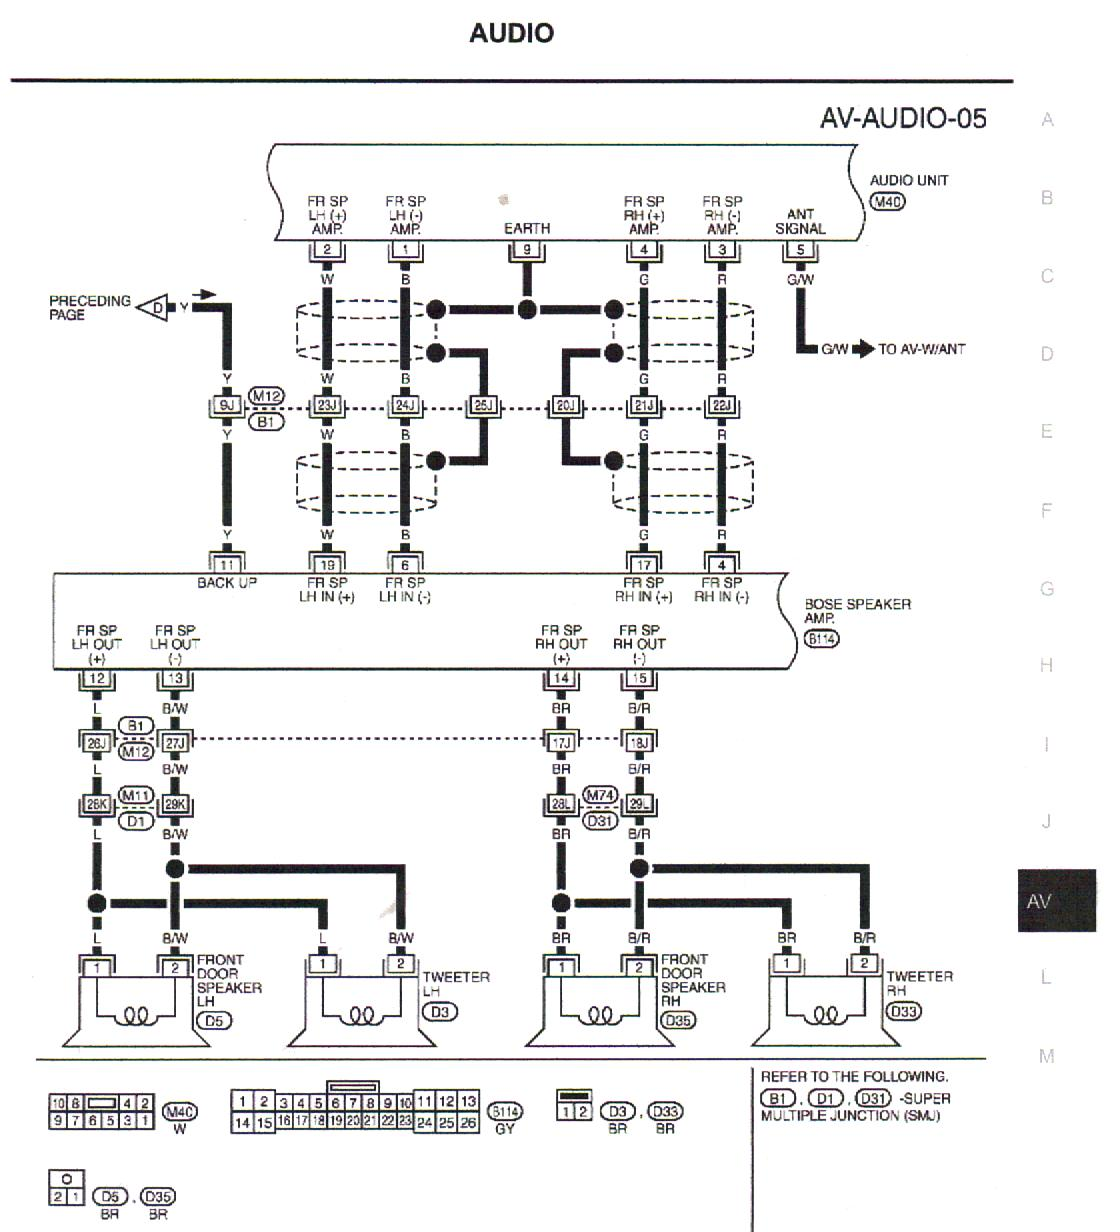 stereo wiring diagram for 2005 gmc envoy